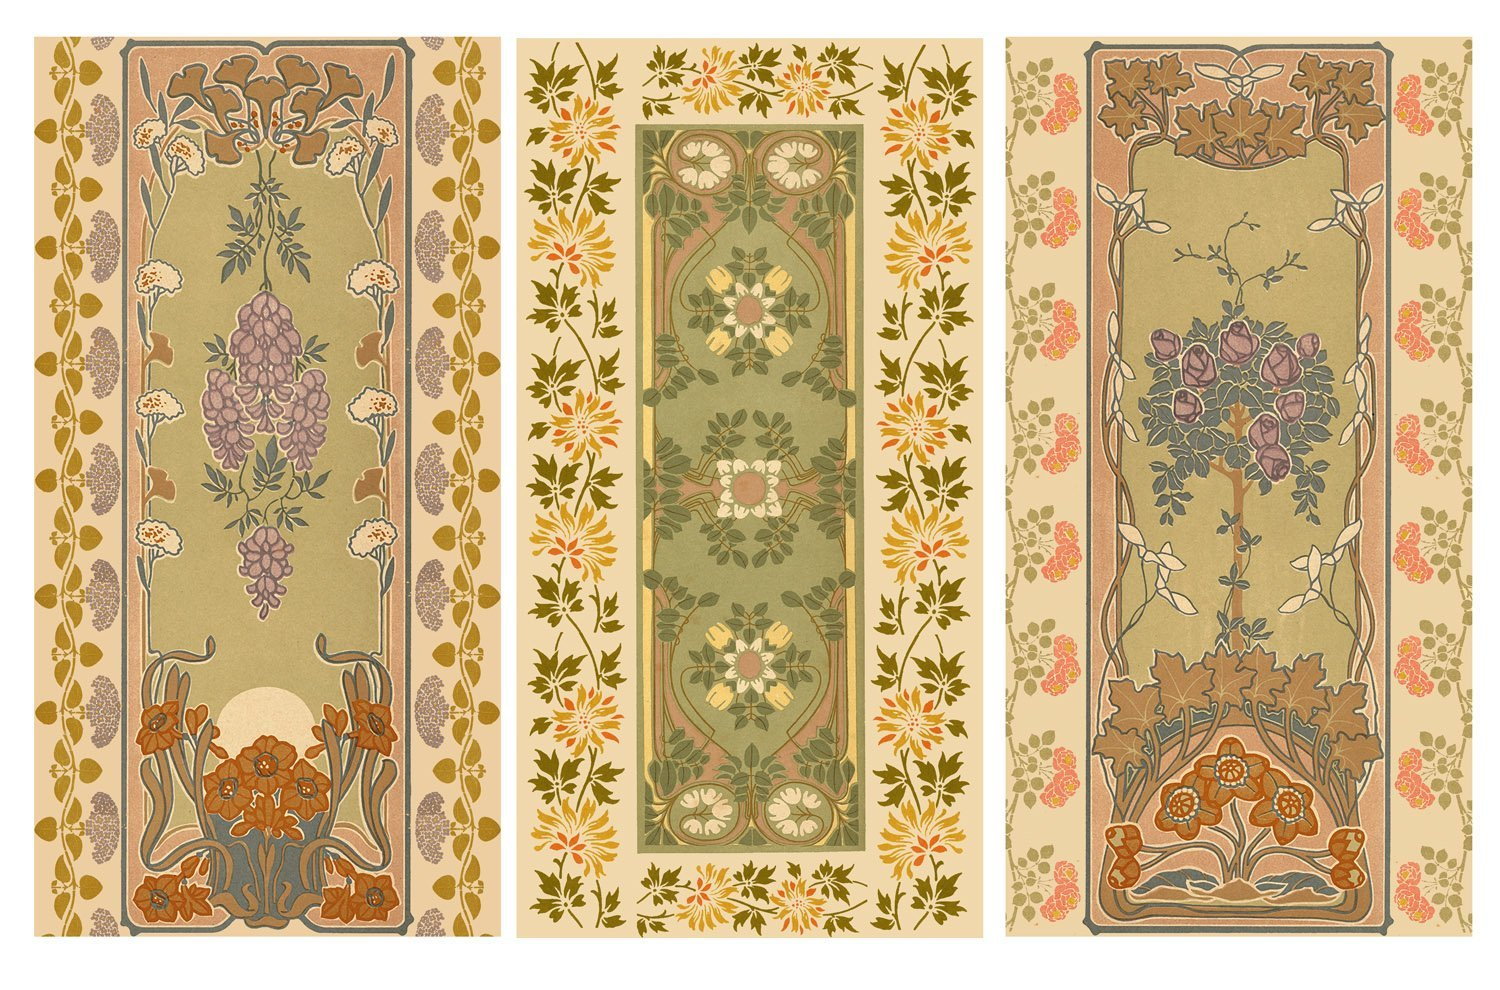 Decoupage Paper Pack (12 sheets A4 / 8x11) Art Nouveau Borders Patterns FLONZ Vintage Ephemera